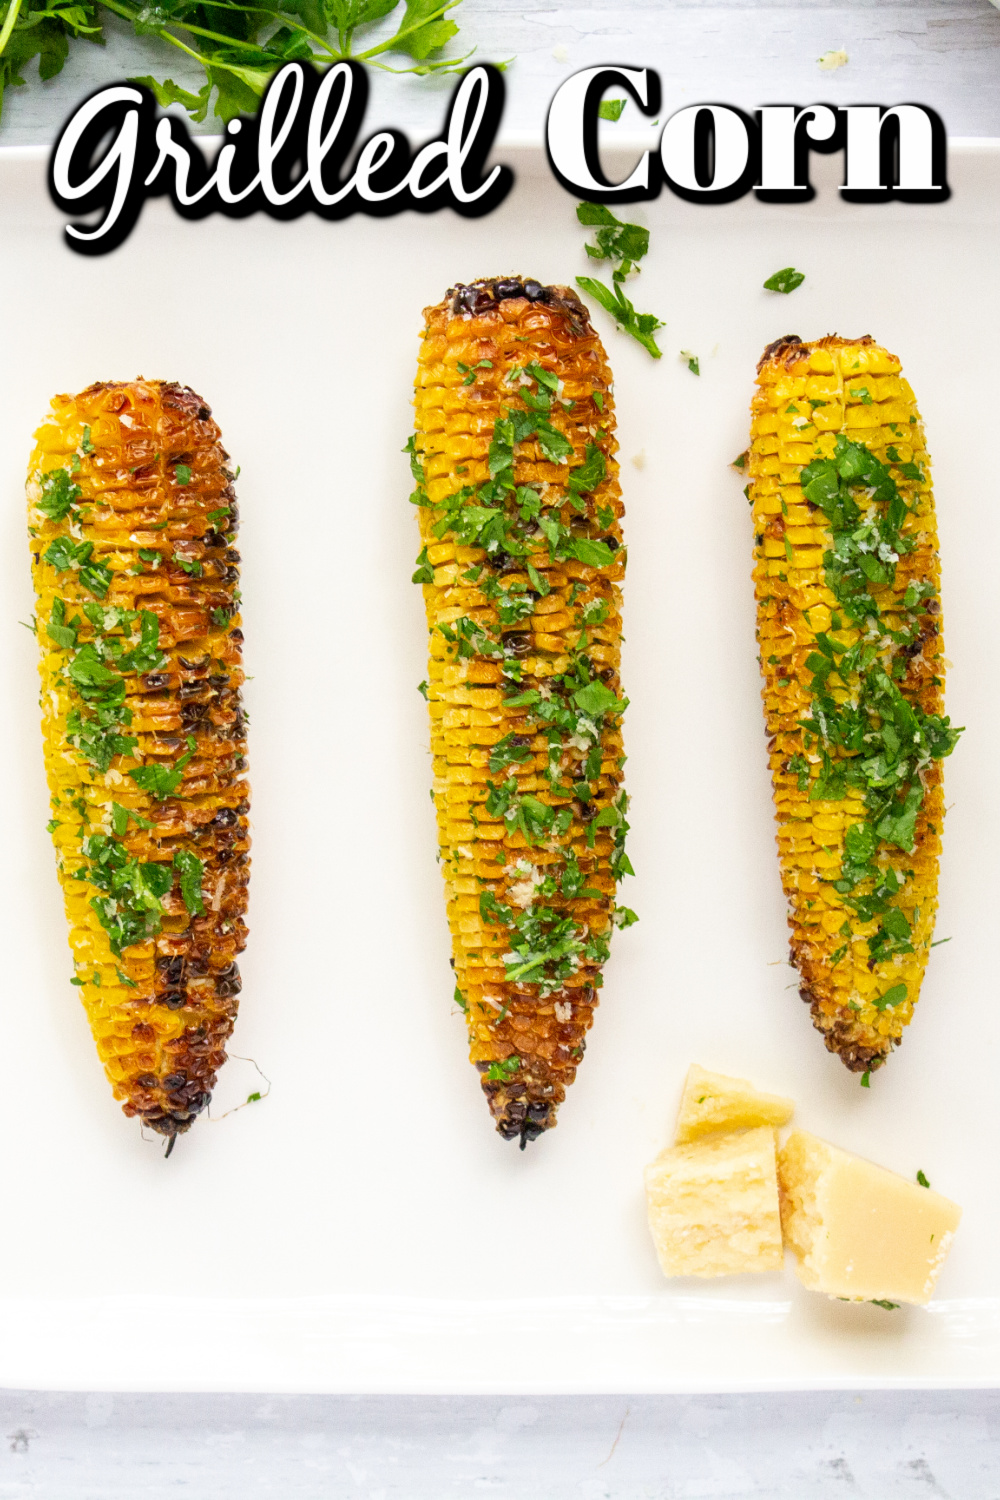 Grilled Corn On The Cob should be a regular menu item all summer long! Wonderful  sweet crunchy corn on the cob, with just a hint of smoky char from the grill?